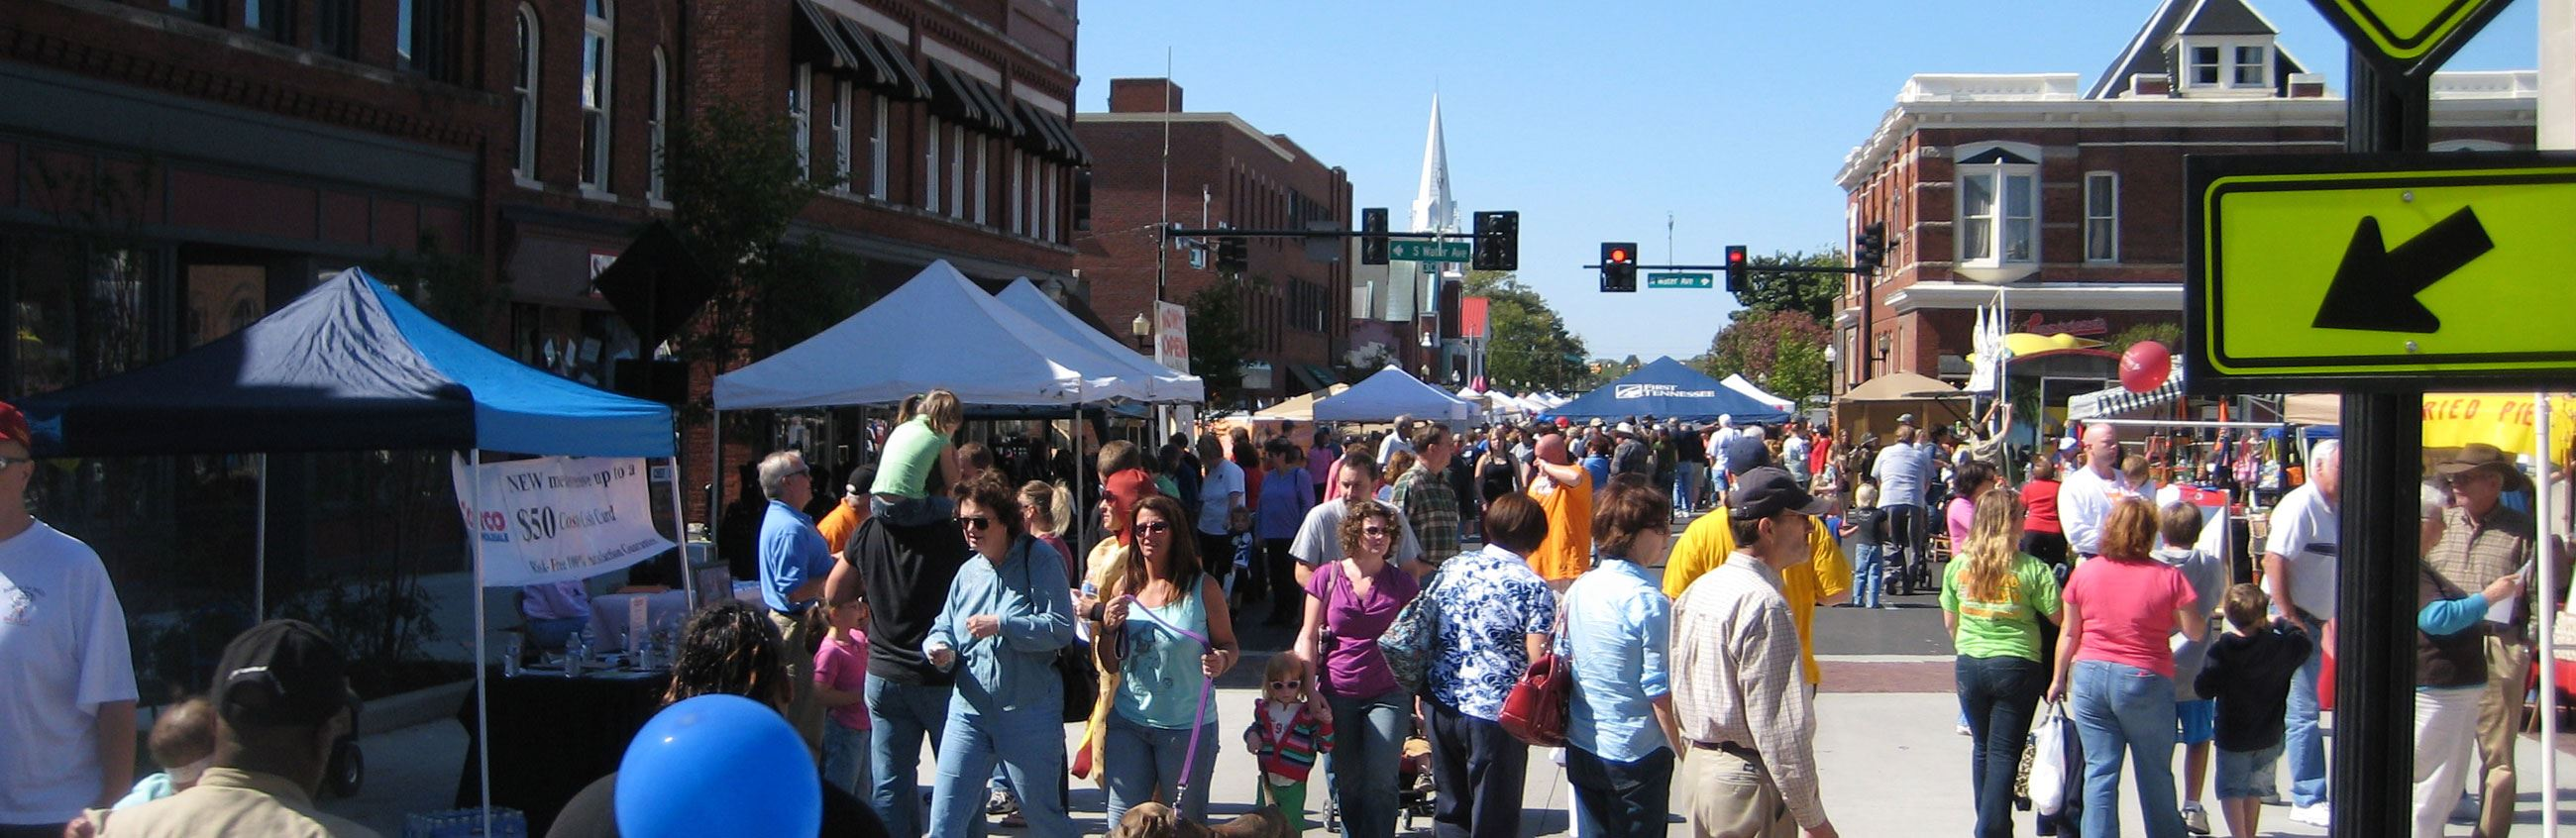 People attending the Main Street Festival